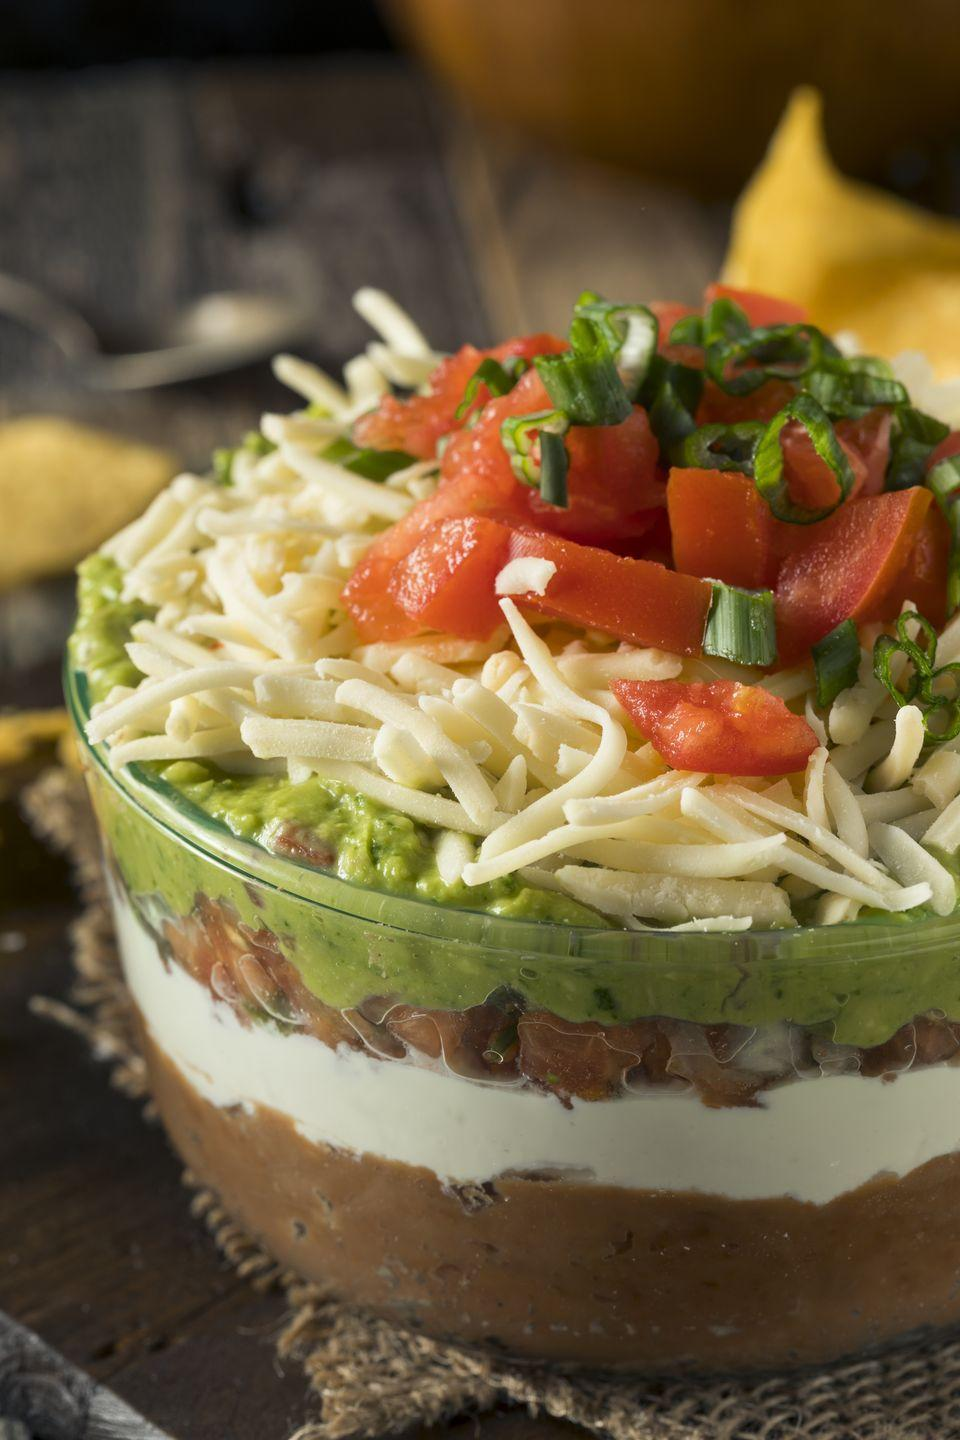 """<p>At only 100 calories a serving, here's a dip you can feel good about diving into.</p><p><a href=""""https://www.goodhousekeeping.com/food-recipes/a11044/seven-layer-dip-recipe-ghk0911/"""" rel=""""nofollow noopener"""" target=""""_blank"""" data-ylk=""""slk:Get the recipe for Healthy Seven Layer Dip »"""" class=""""link rapid-noclick-resp""""><em>Get the recipe for Healthy Seven Layer Dip »</em></a></p>"""